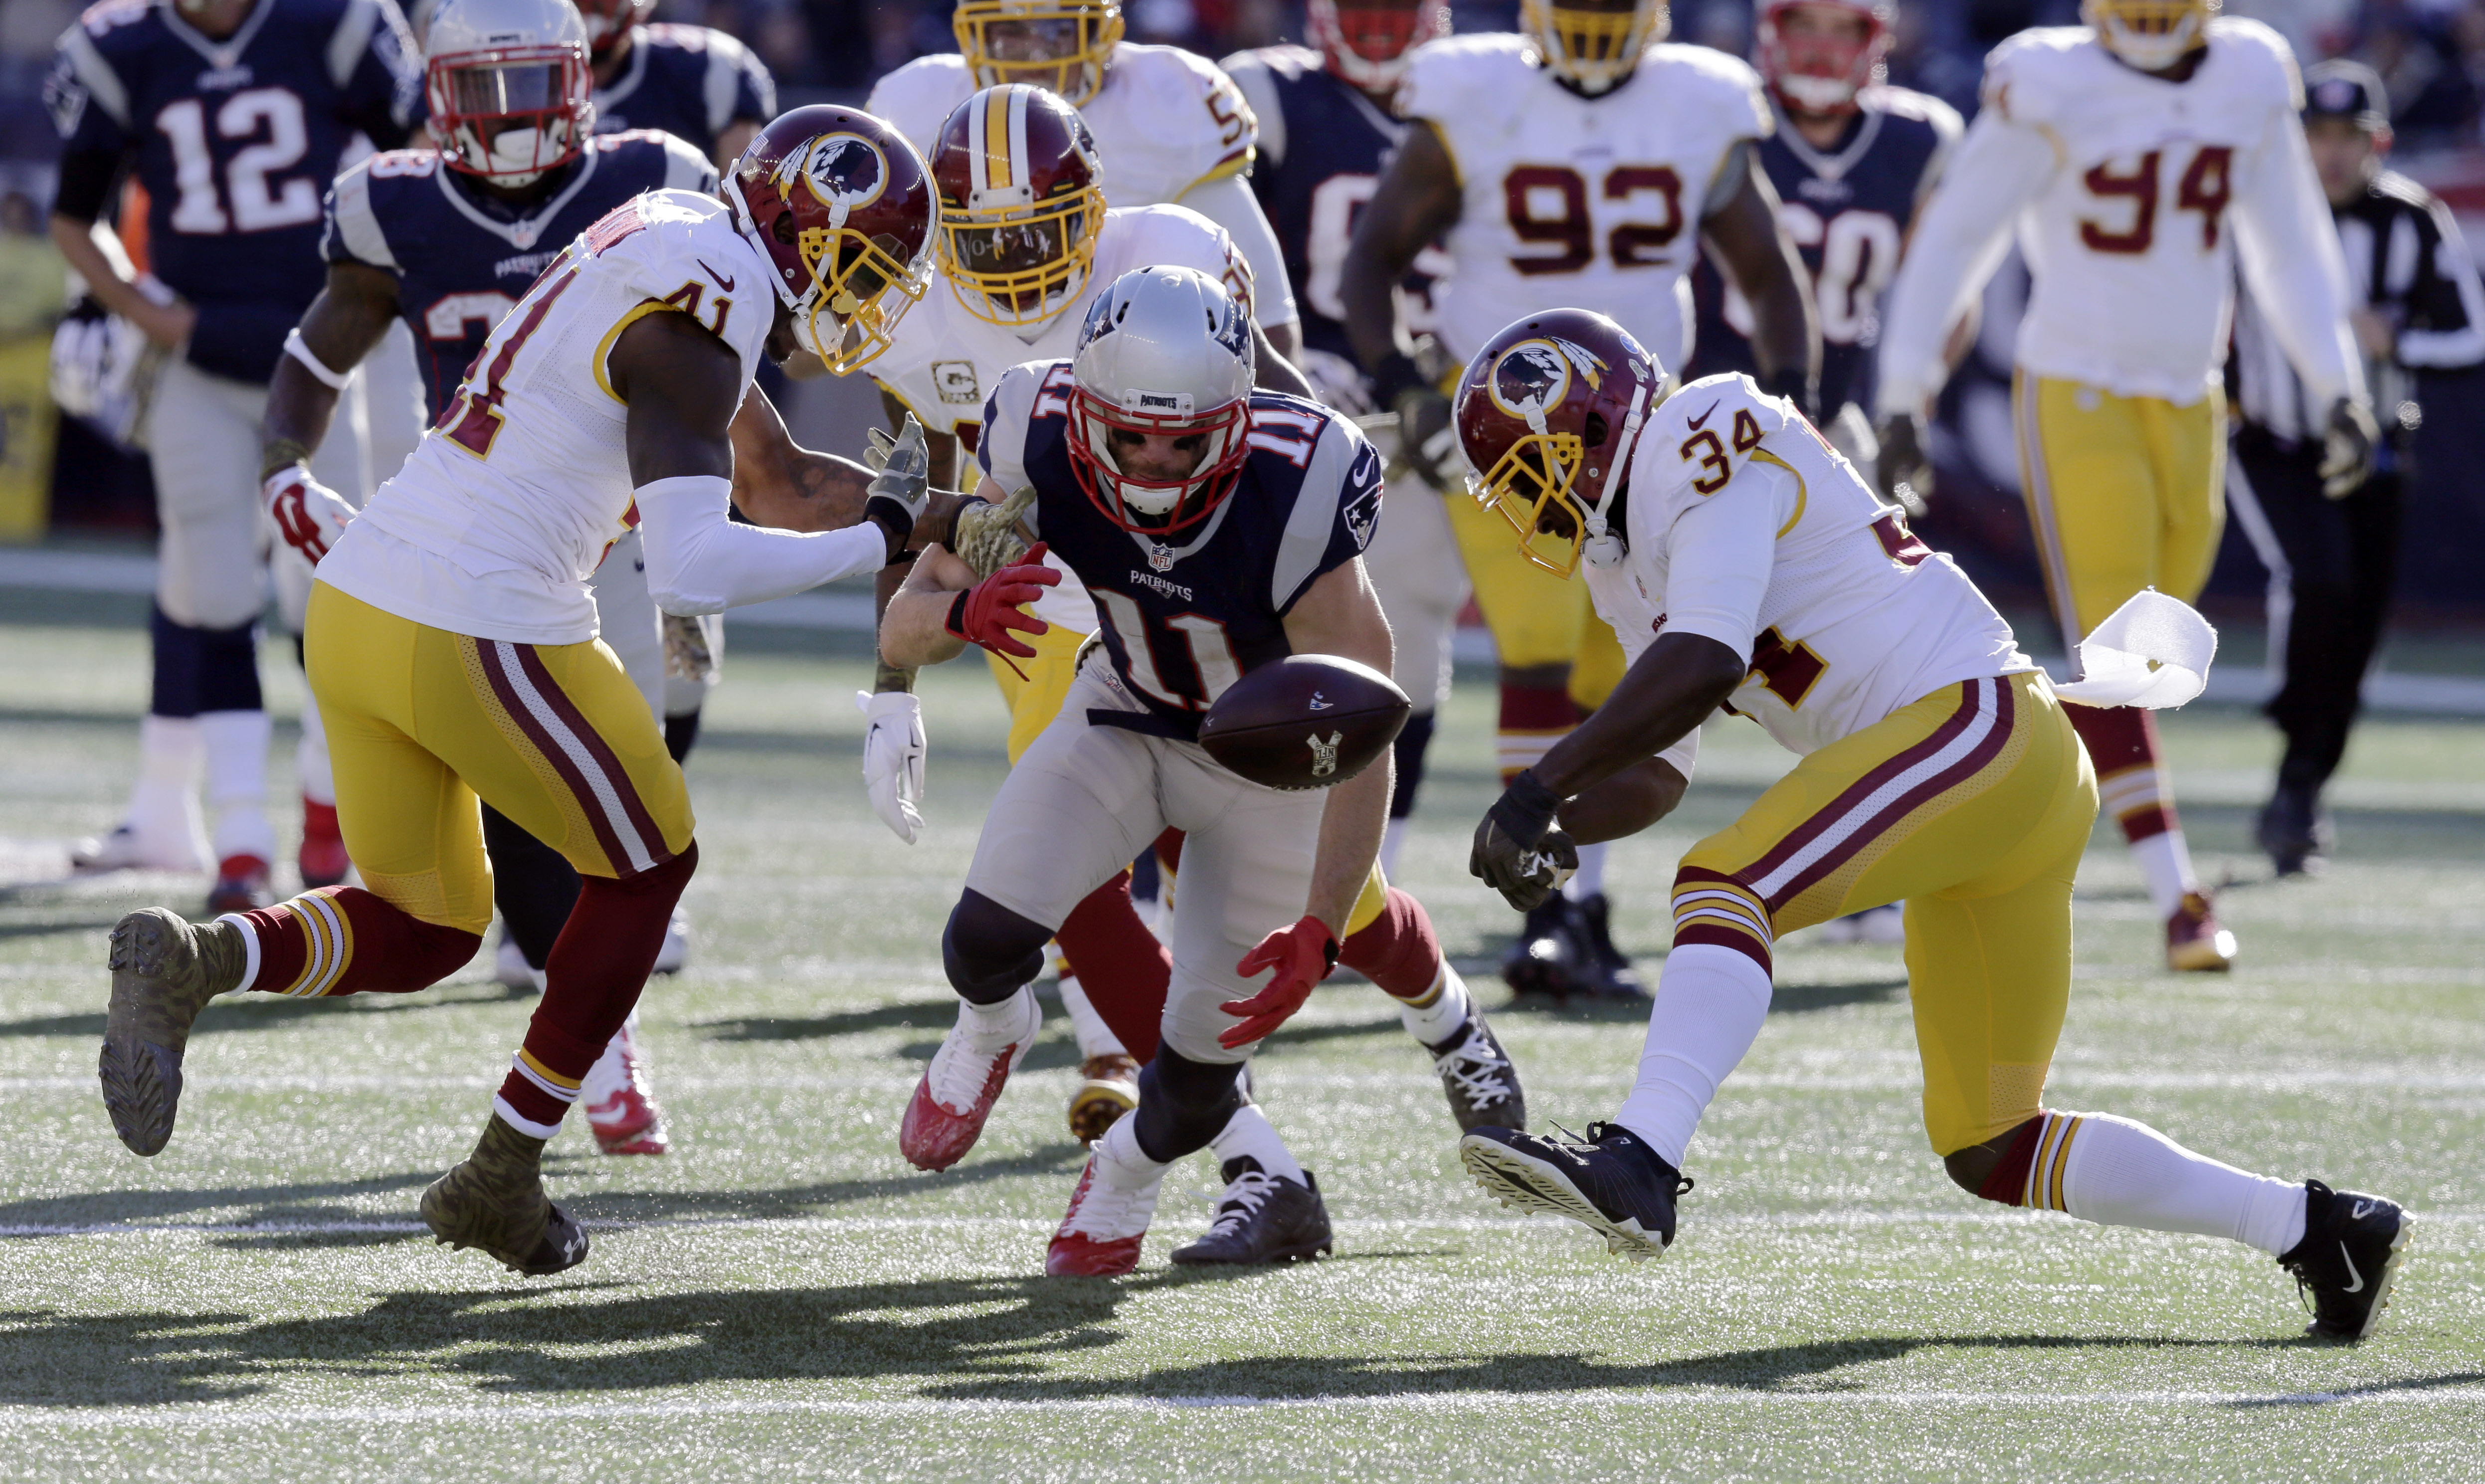 New England Patriots wide receiver Julian Edelman (11) fumbles between Washington Redskins defensive backs Will Blackmon (41) and Trenton Robinson (34) during the first half of an NFL football game, Sunday, Nov. 8, 2015, in Foxborough, Mass. Blackmon reco